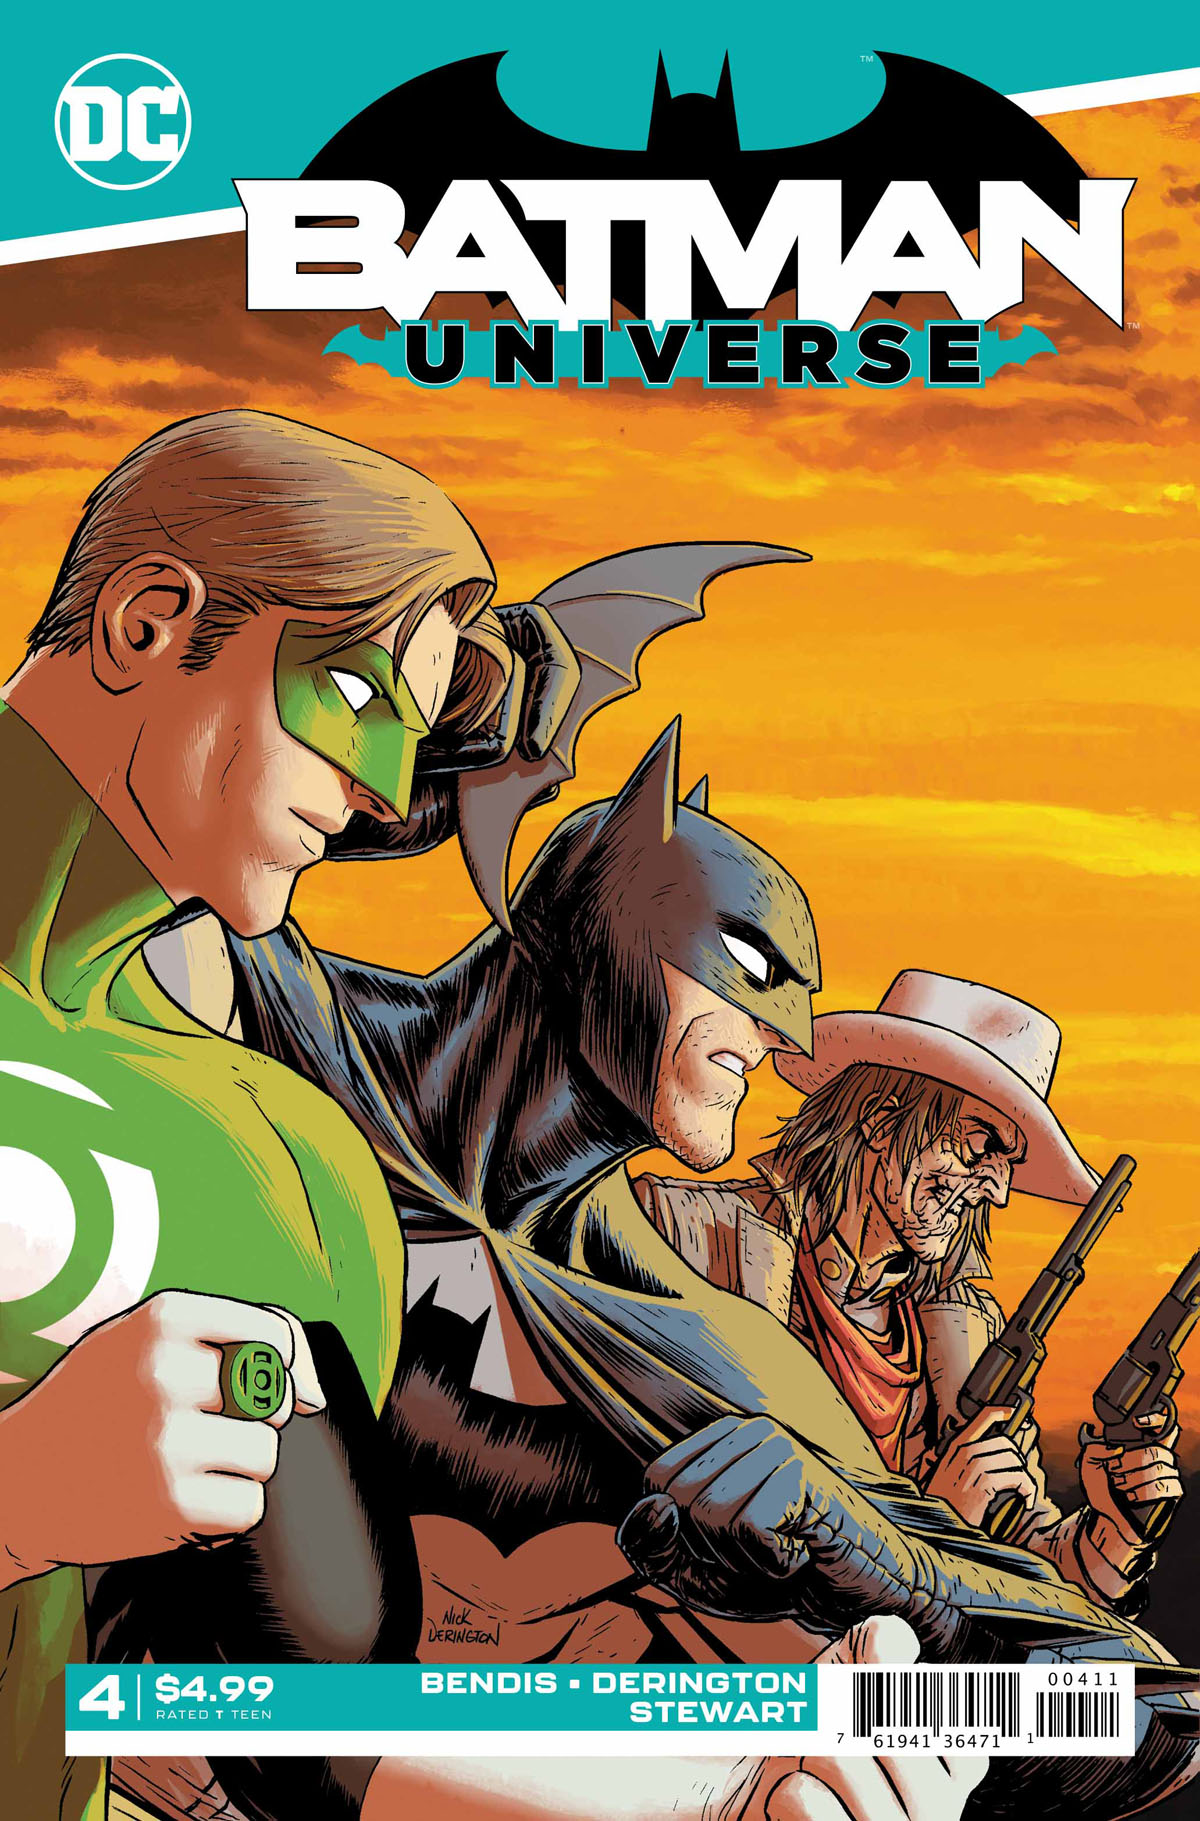 Batman Universe #4 cover